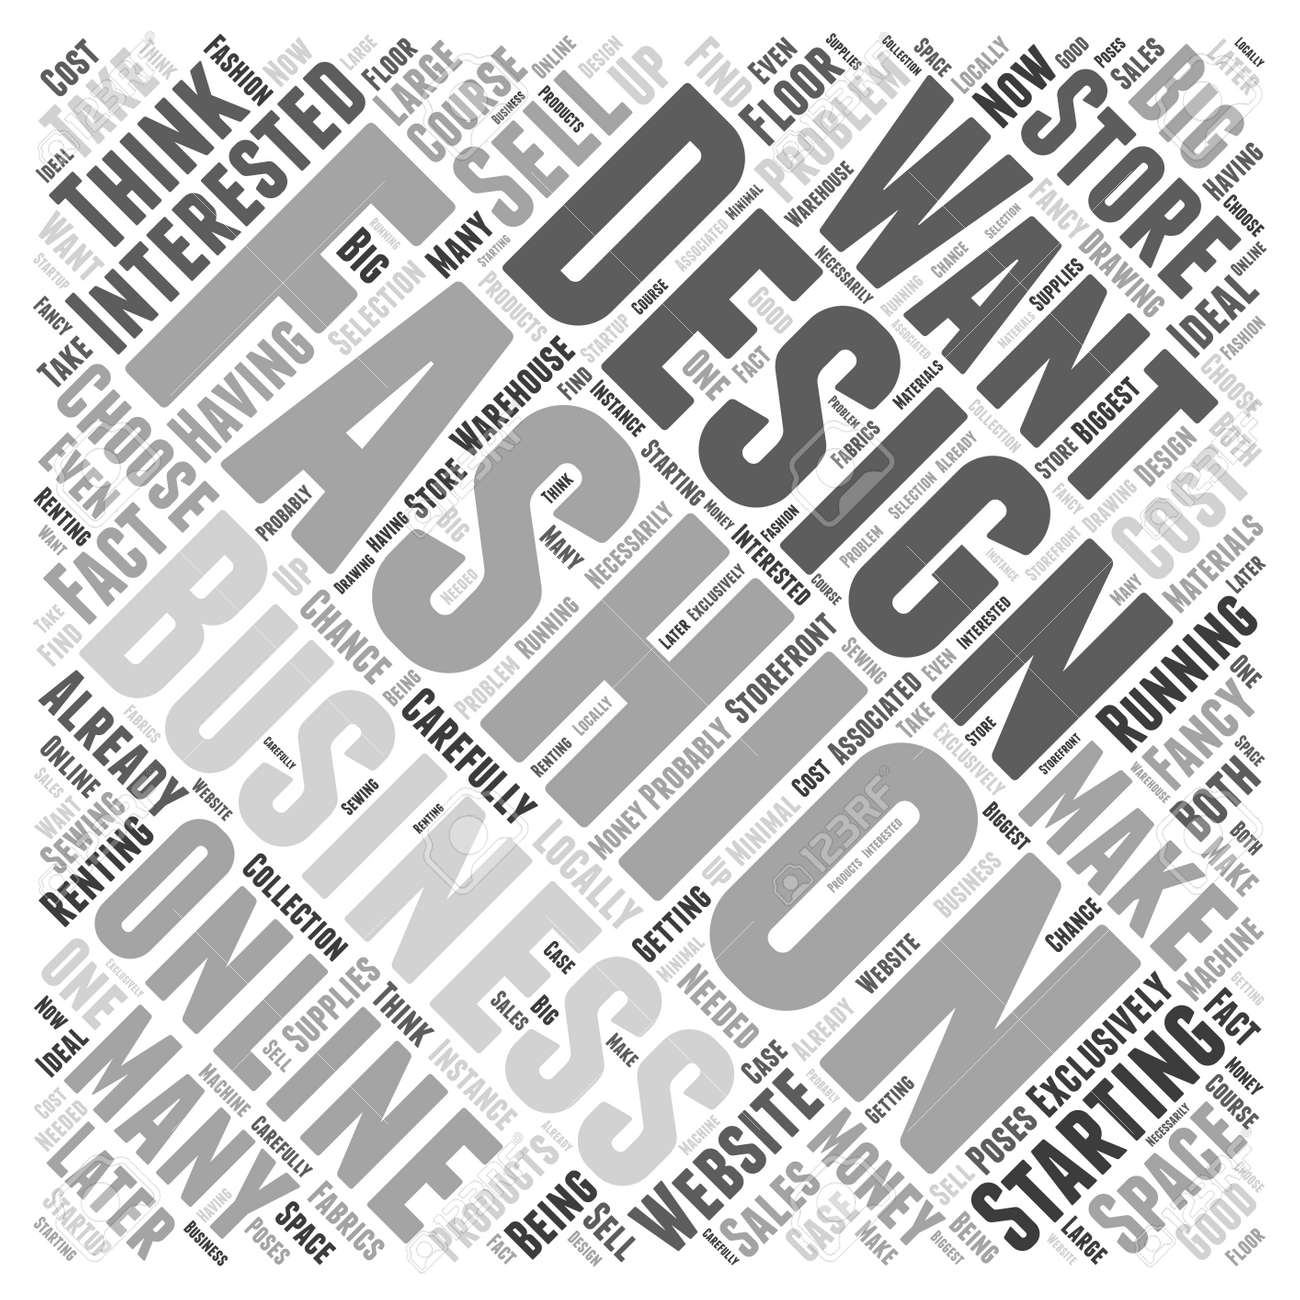 Can You Make Money As A Fashion Designer Royalty Free Cliparts Vectors And Stock Illustration Image 67214292